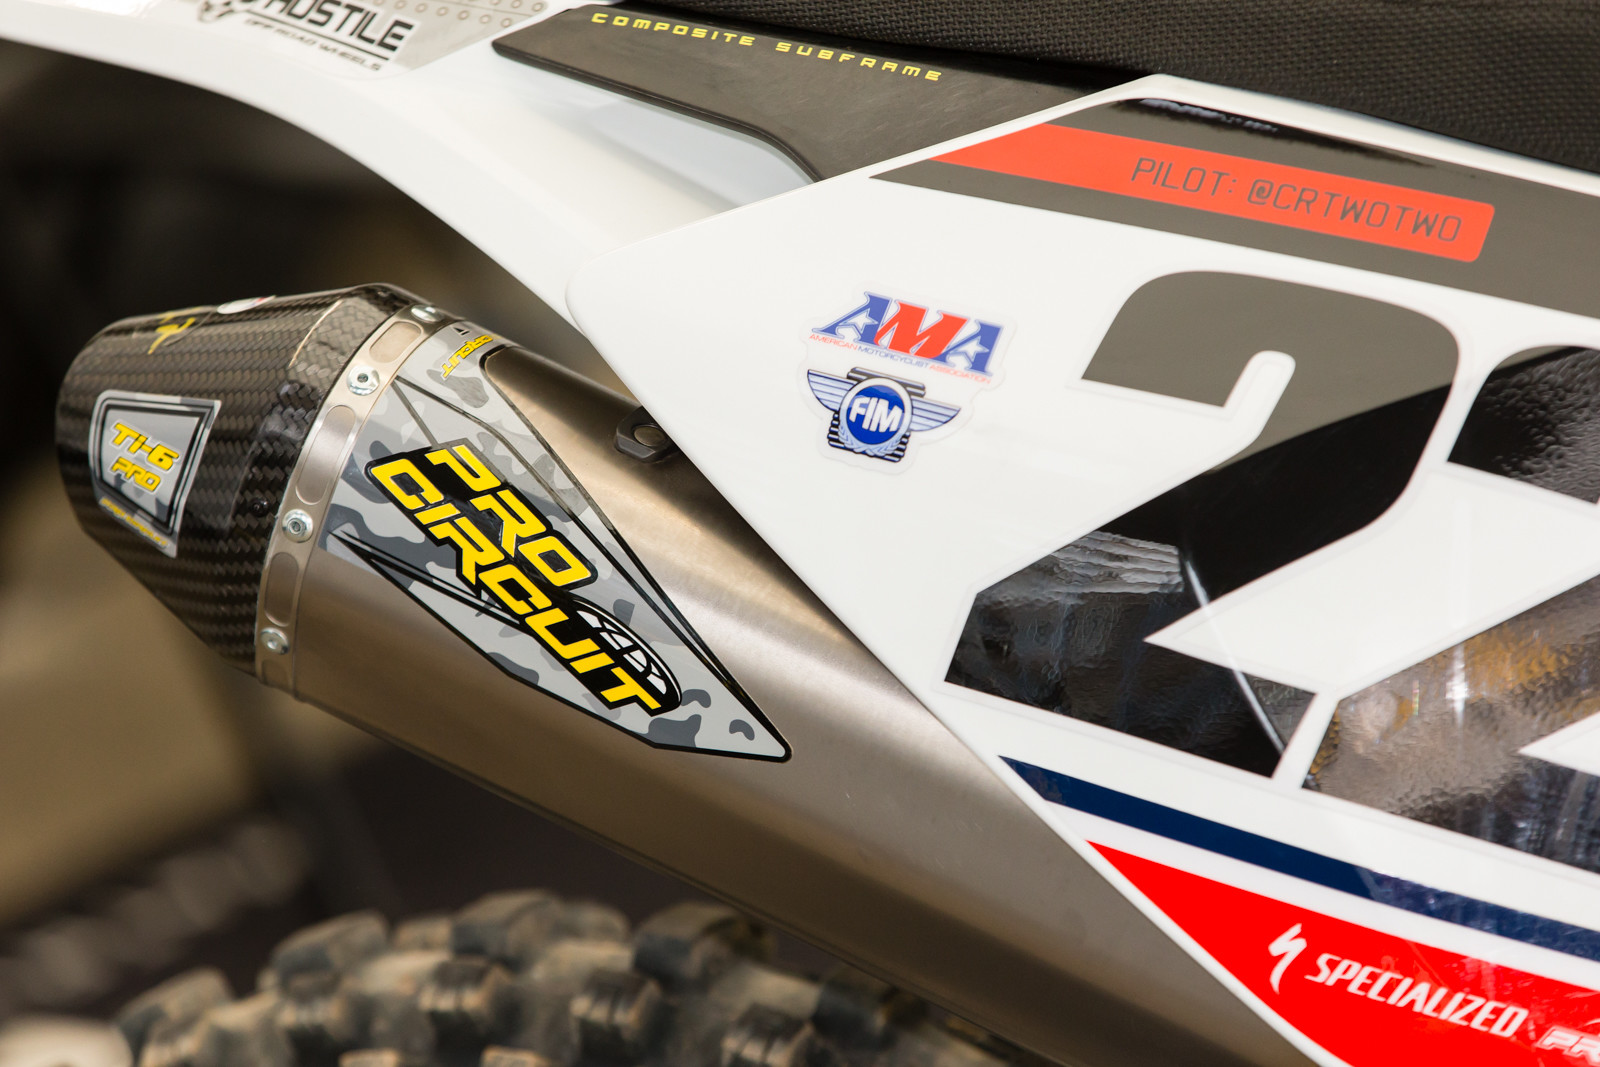 Pro Circuit pipe stickers were customized per team for the occasion.